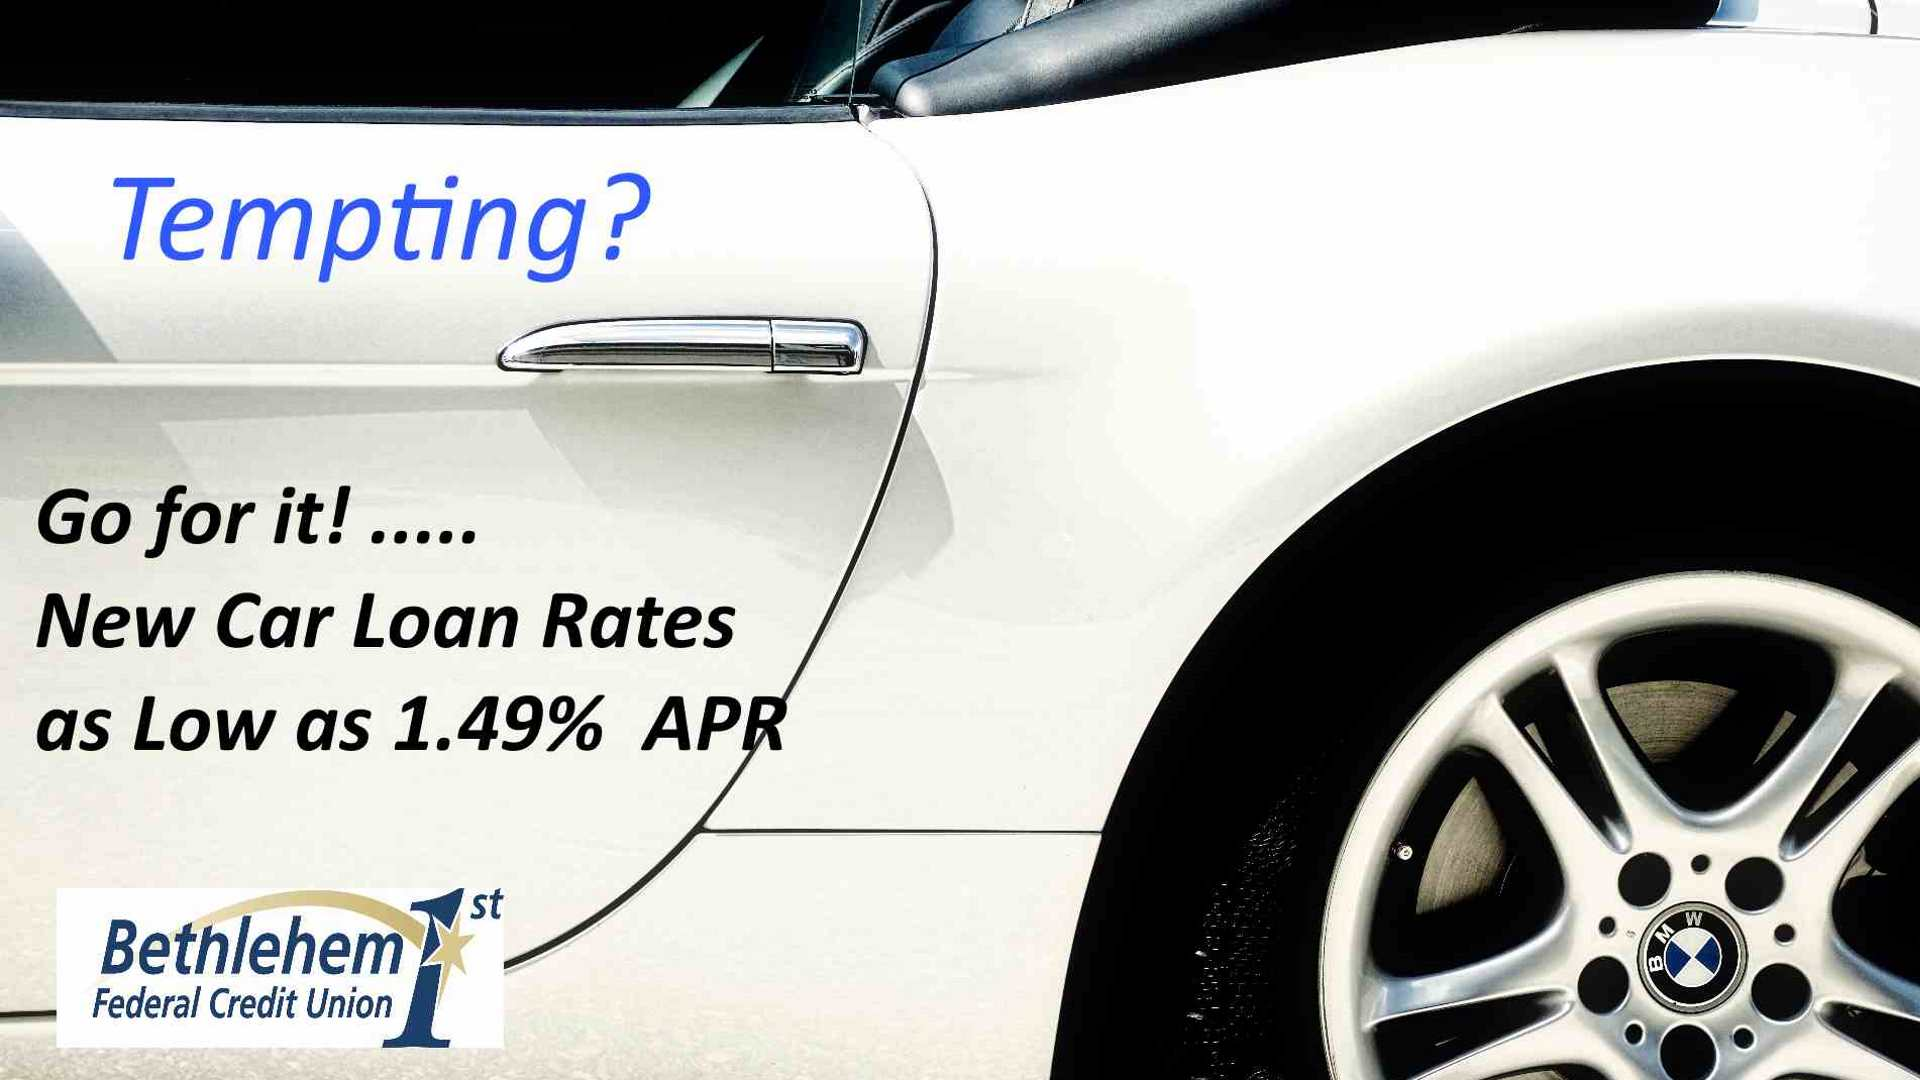 Read more about great car loan rates at Bethlehem 1st FCU...